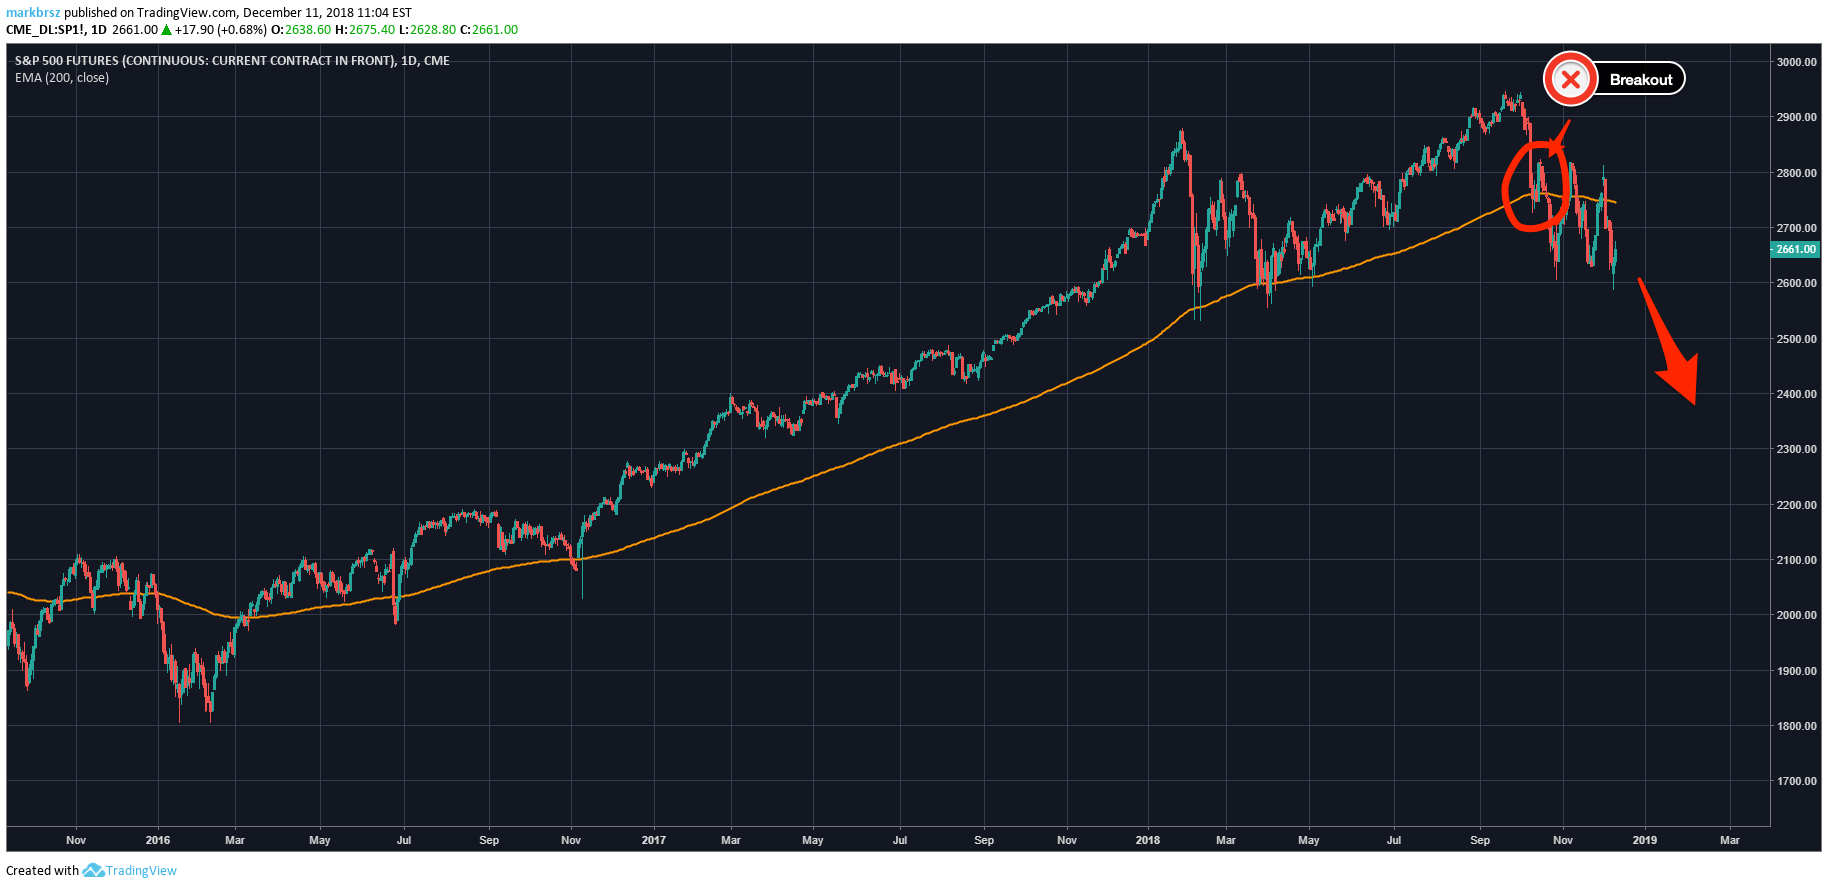 200 Day Moving Average Example - SP500 futures